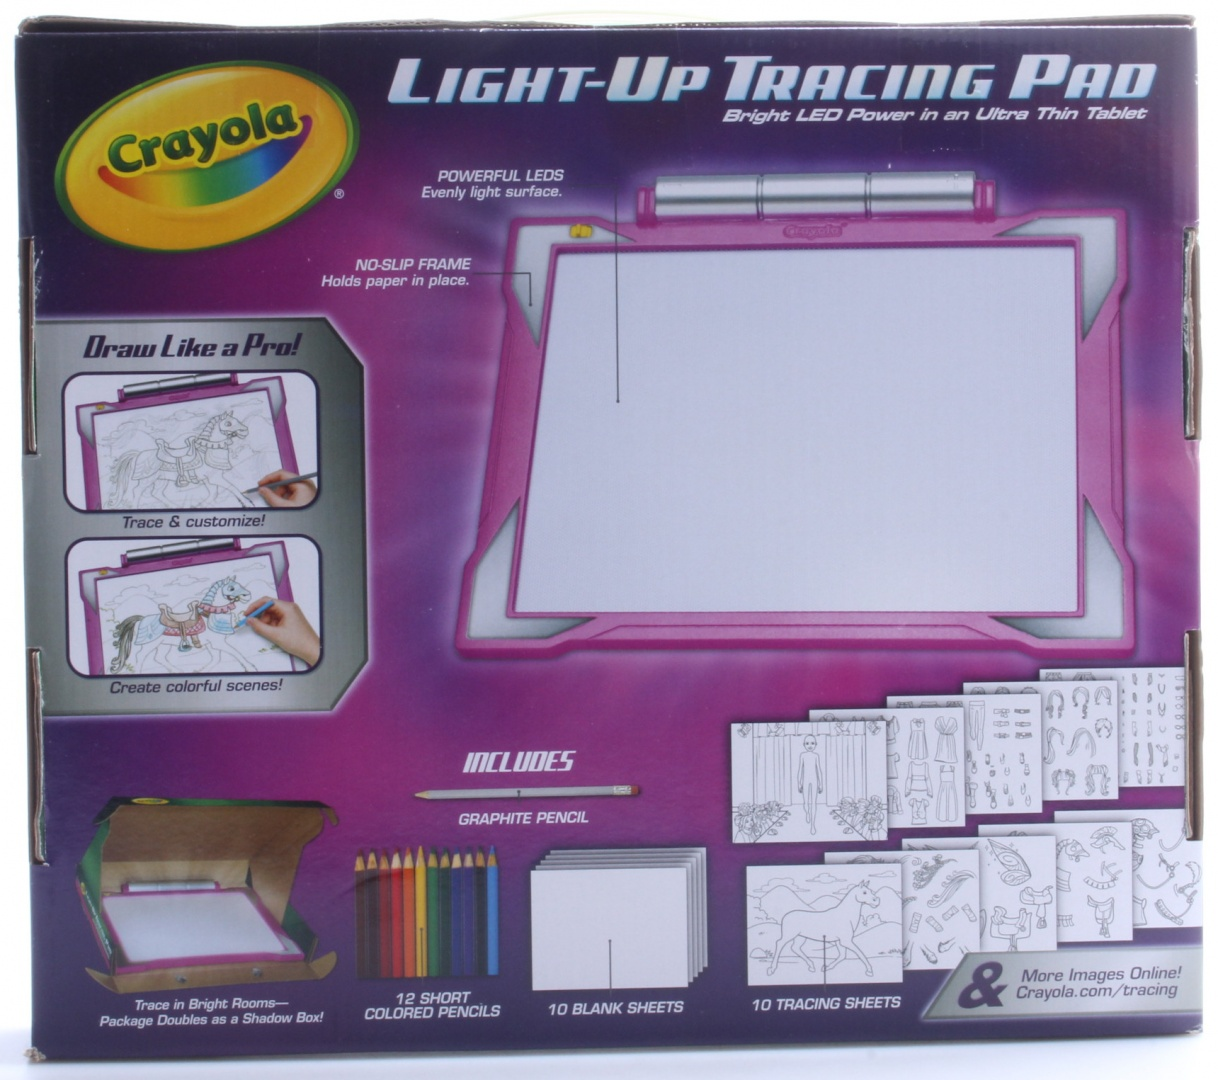 Crayola Light Up Tracing Pad Pink Colouring Board For Kids Gift Toys For Girls Ages 6 7 8 9 10 By Crayola Shop Online For Toys In Australia